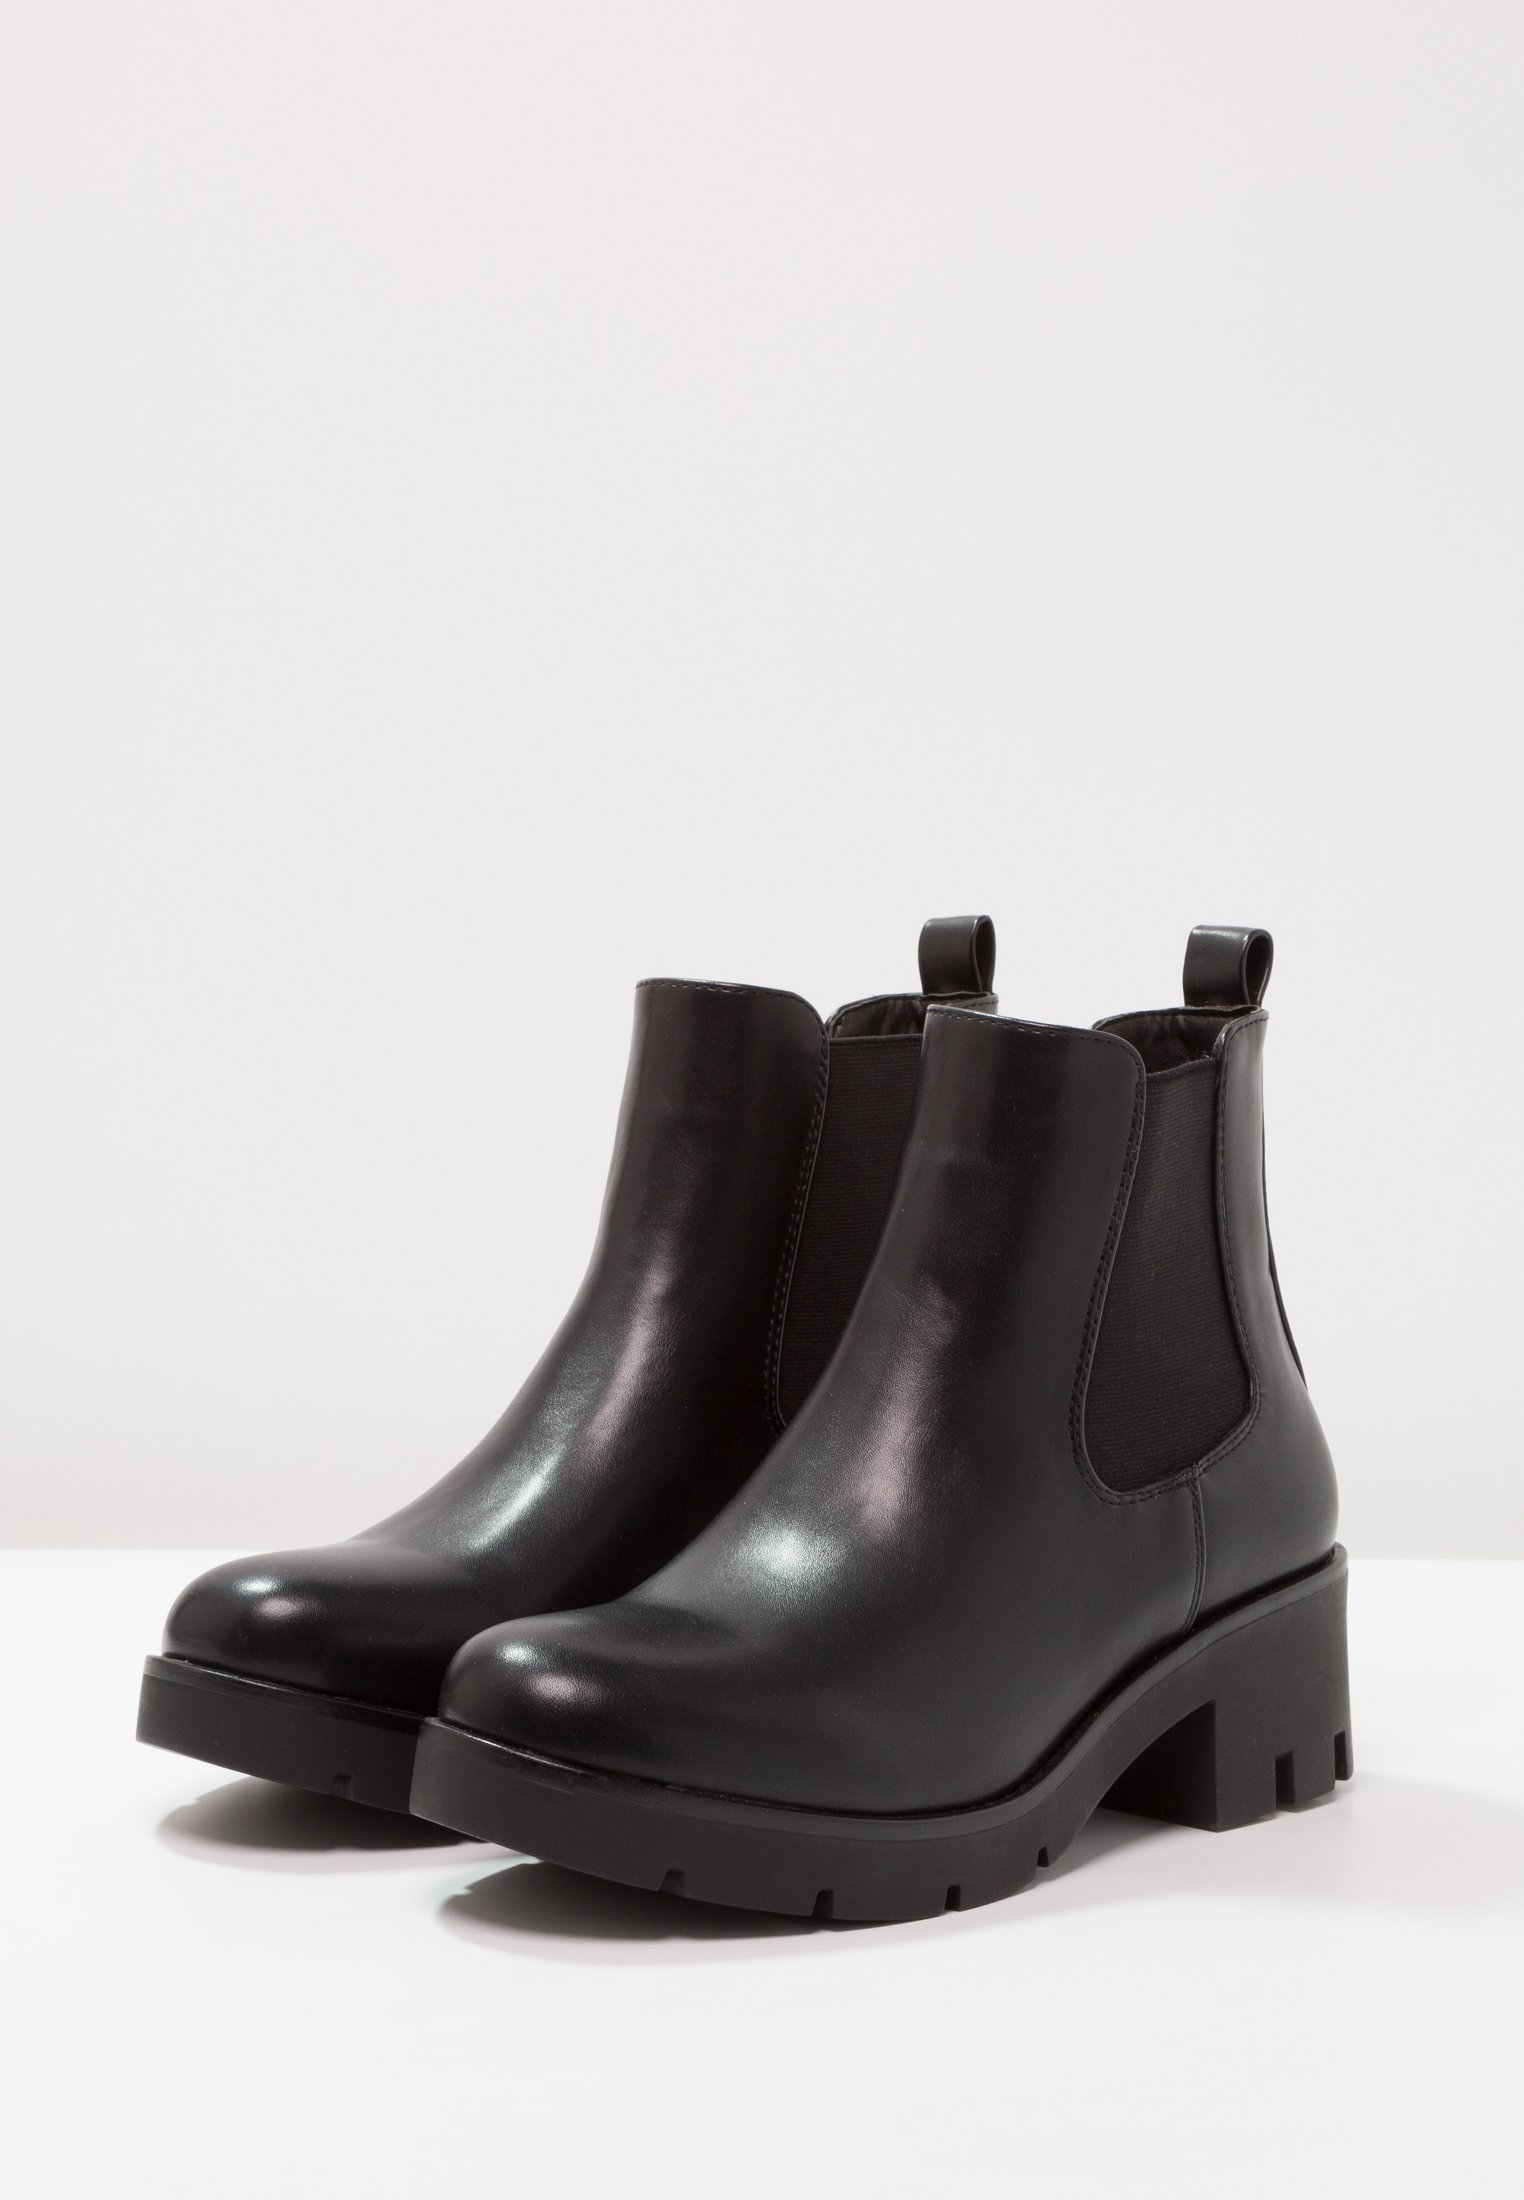 Best Price Cheapest Anna Field Ankle boots - black | women's shoes 2020 QcwQI